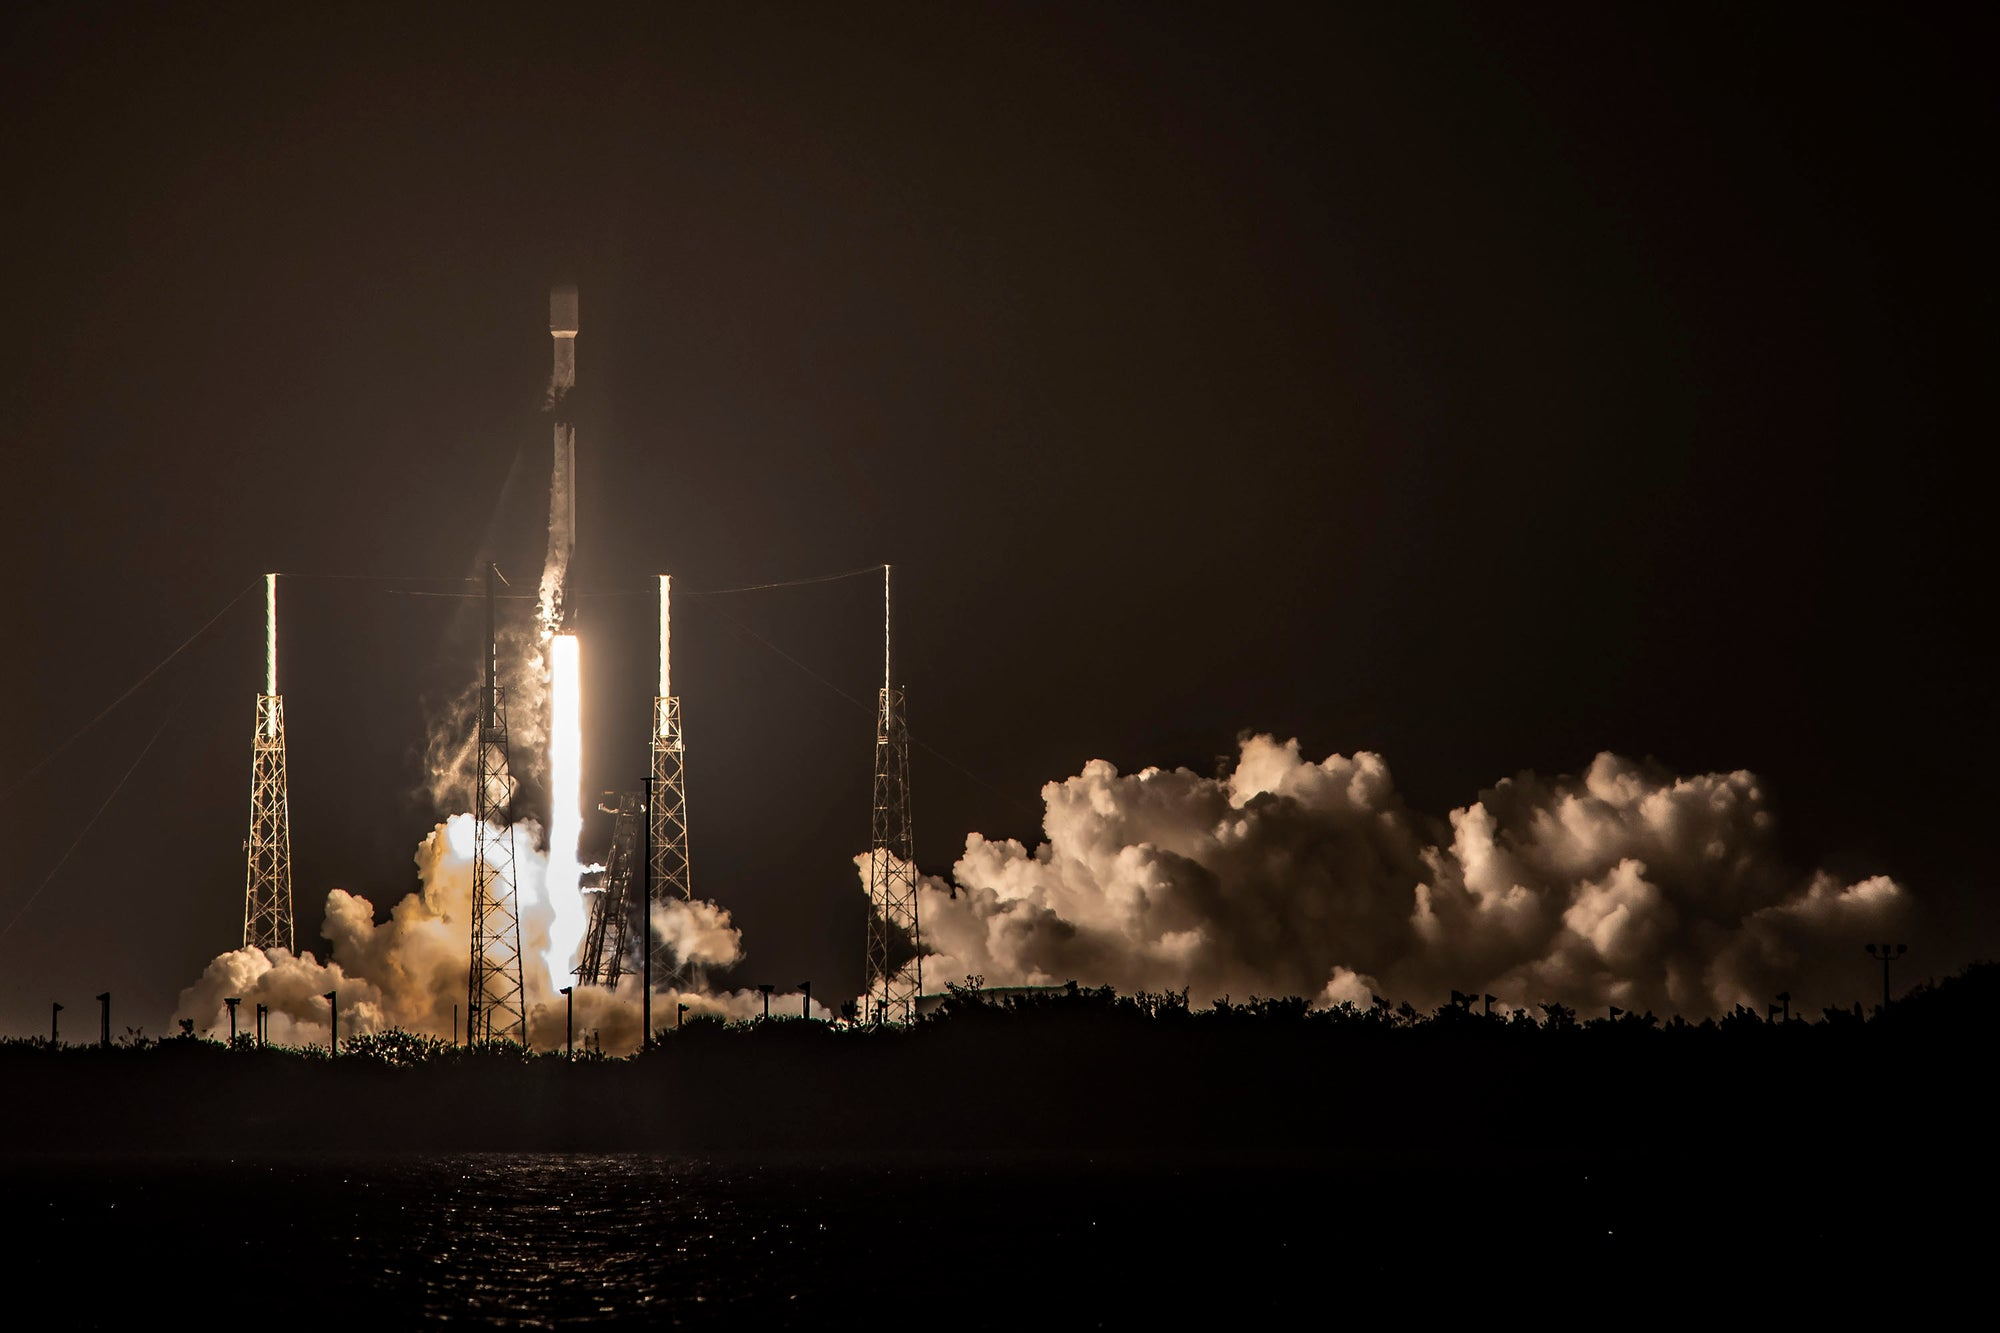 SpaceX launches Falcon 9 for the seventh time to deploy Starlink satellites